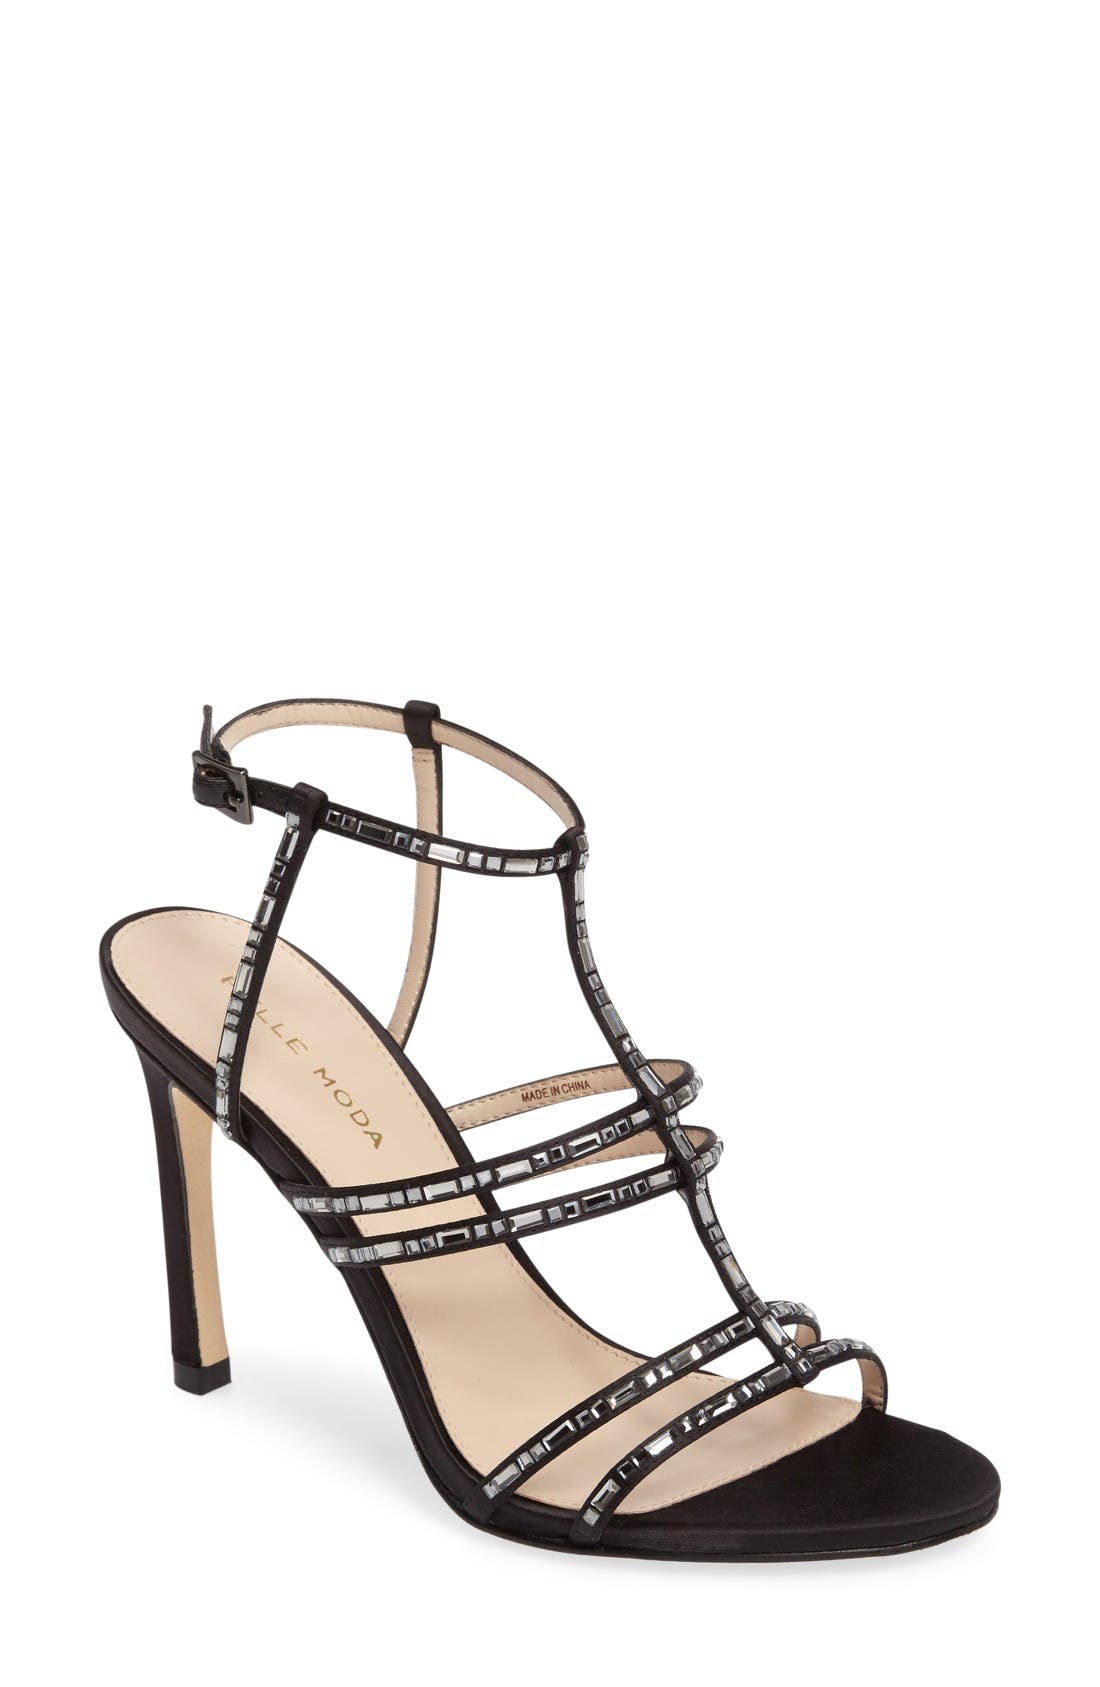 Essey 2 Sandal,                         Main,                         color, Black Leather